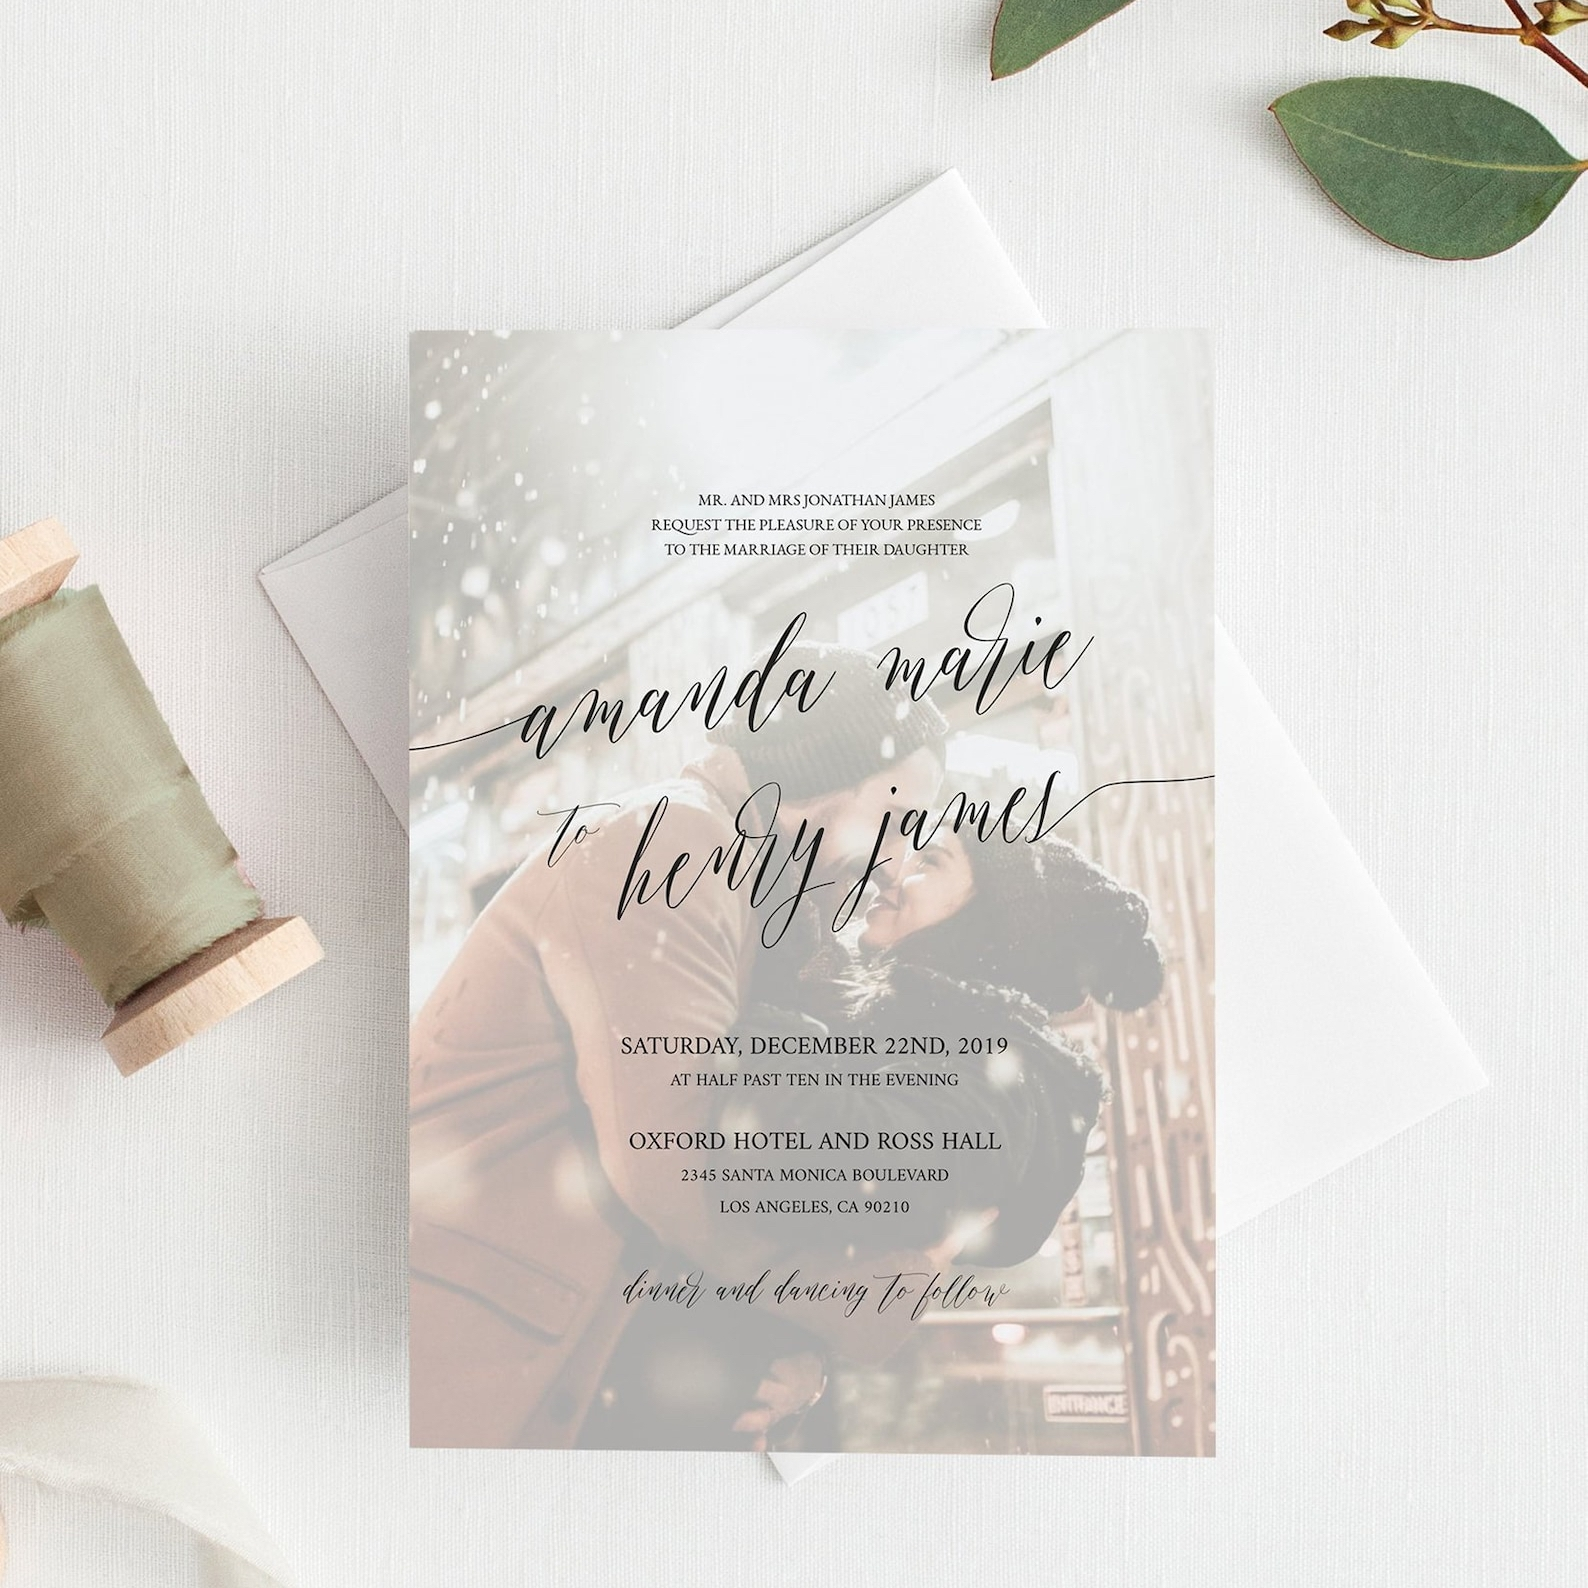 Wedding invitation with your photo in the background